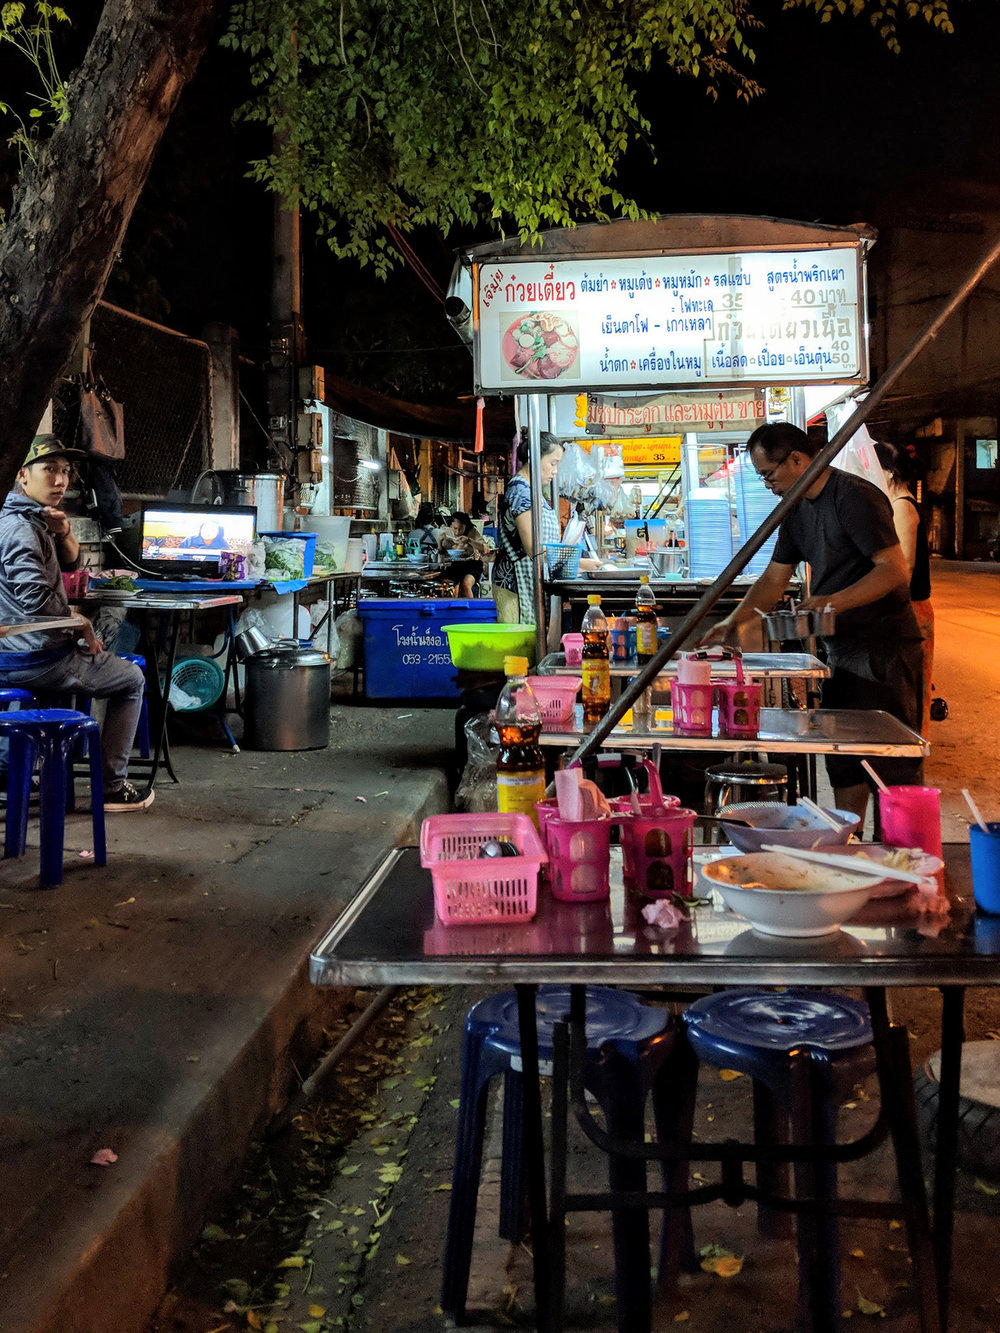 Dinner at a street vendor serving up pork noodles